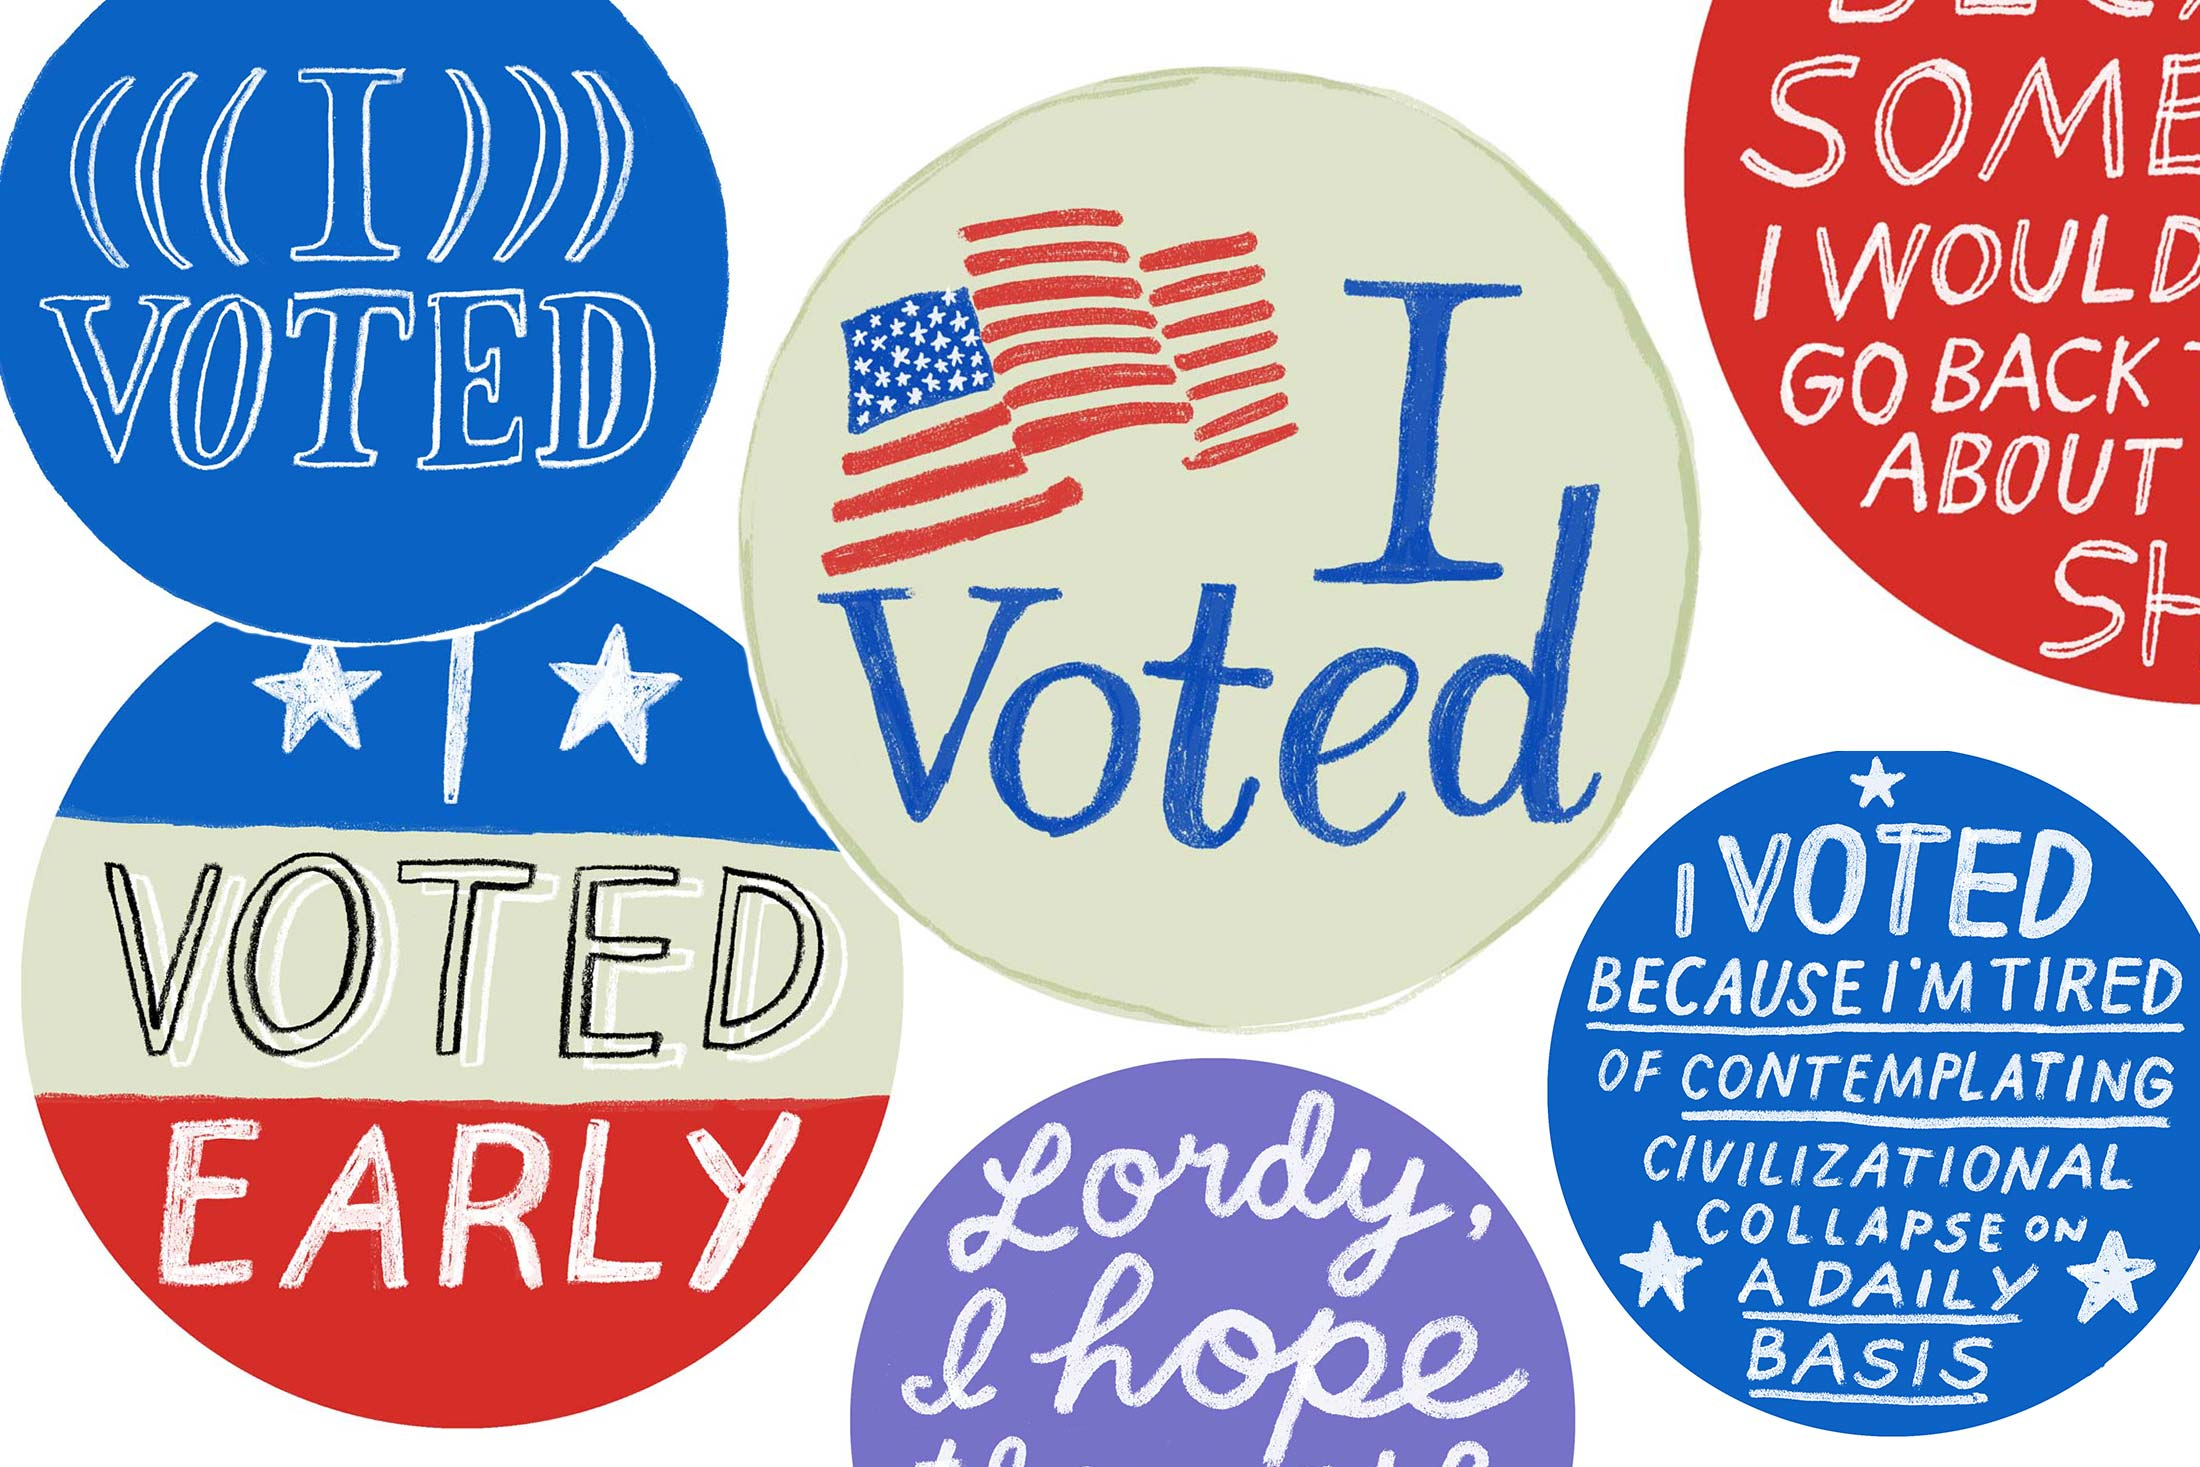 picture about I Voted Stickers Printable called I Voted\u201d stickers for the 2018 midterm elections: Print